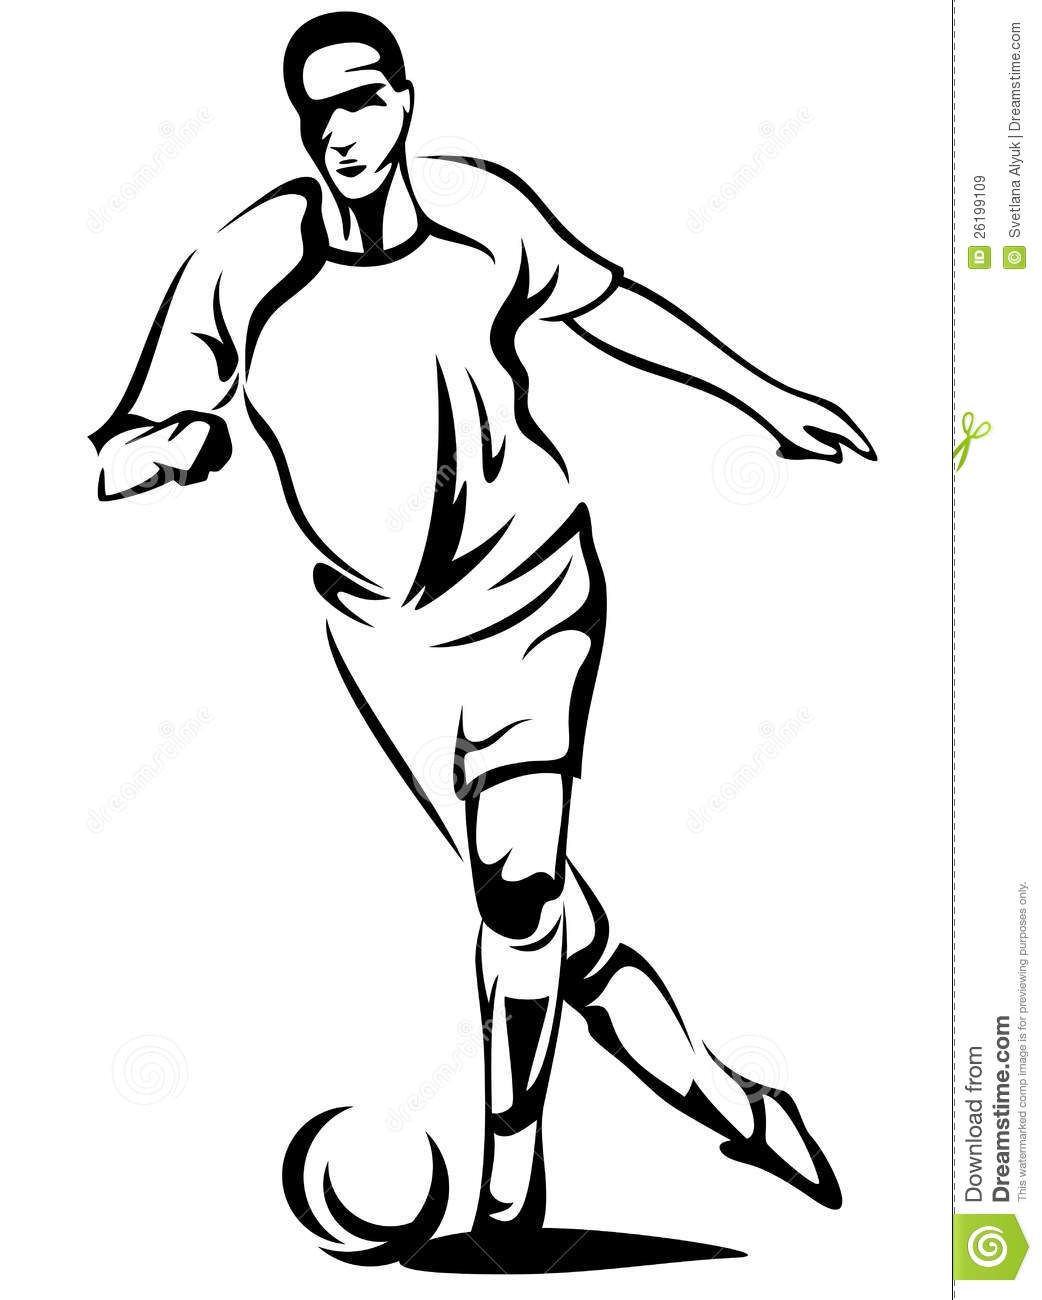 football player line drawing at getdrawings com free for personal rh getdrawings com boy playing football clipart black and white playing football clipart black and white